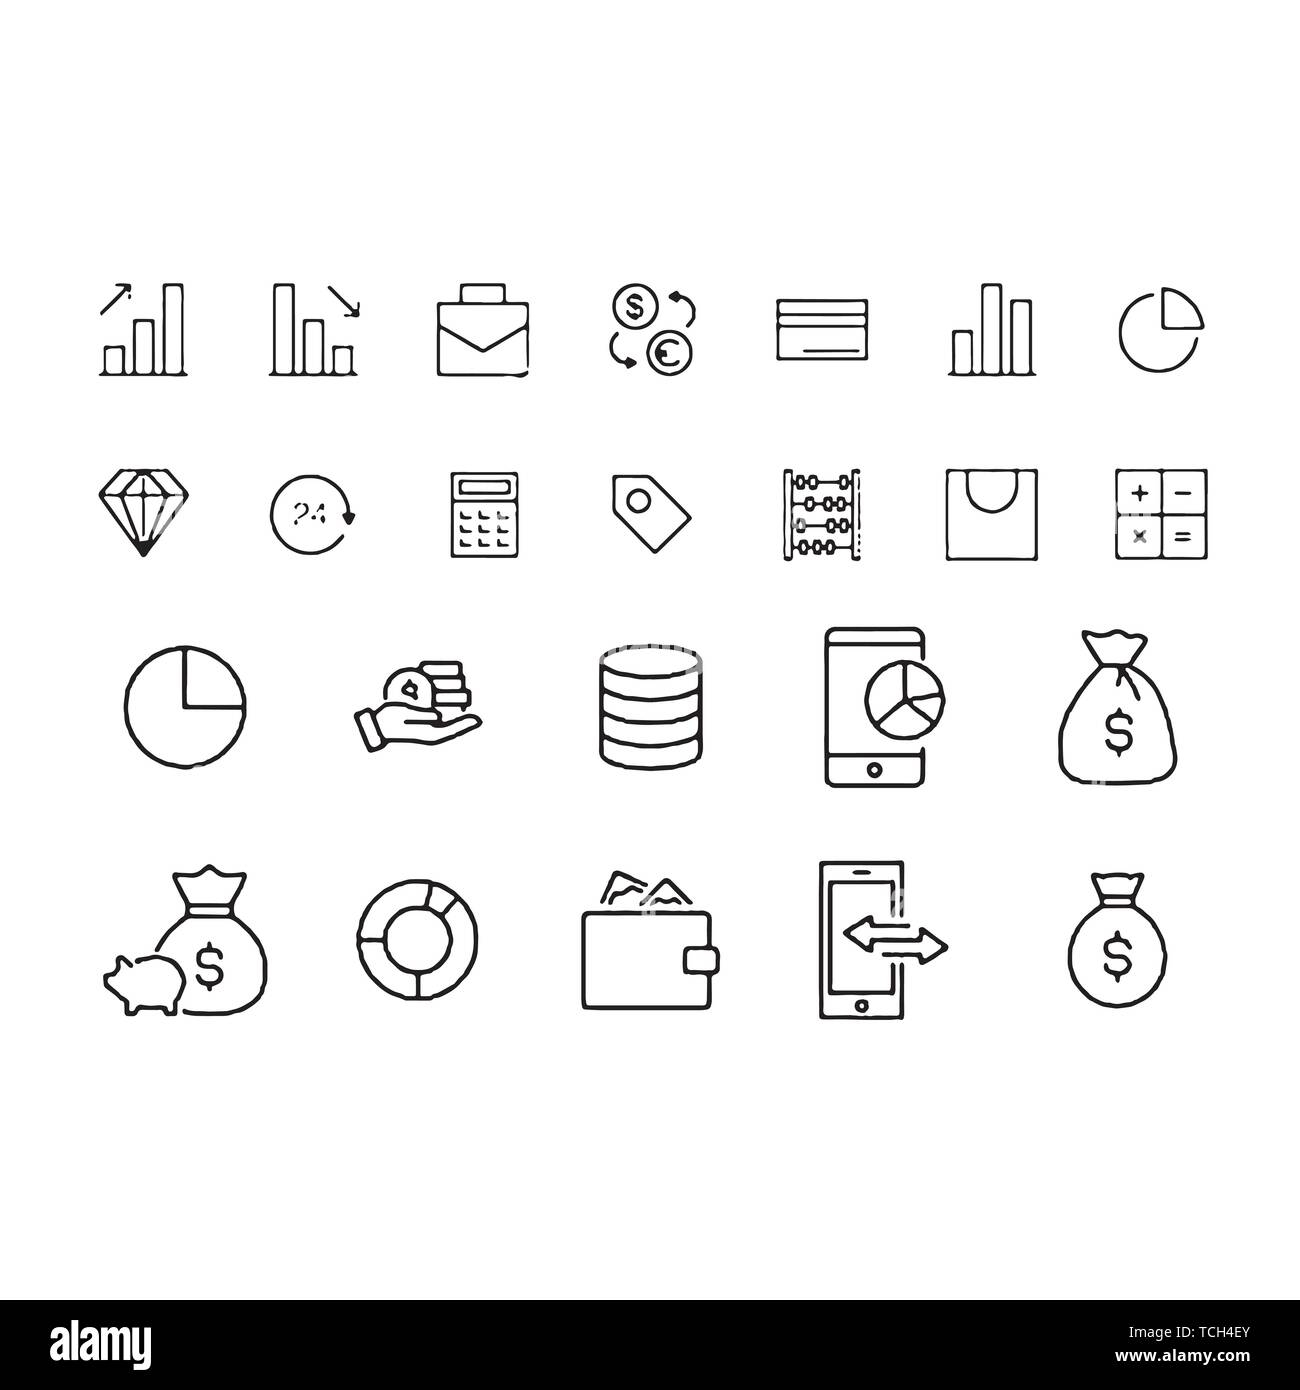 money and payment icons cash wallet and coins account cashback classic icon set quality set vector stock vector image art alamy https www alamy com money and payment icons cash wallet and coins account cashback classic icon set quality set vector image248697763 html